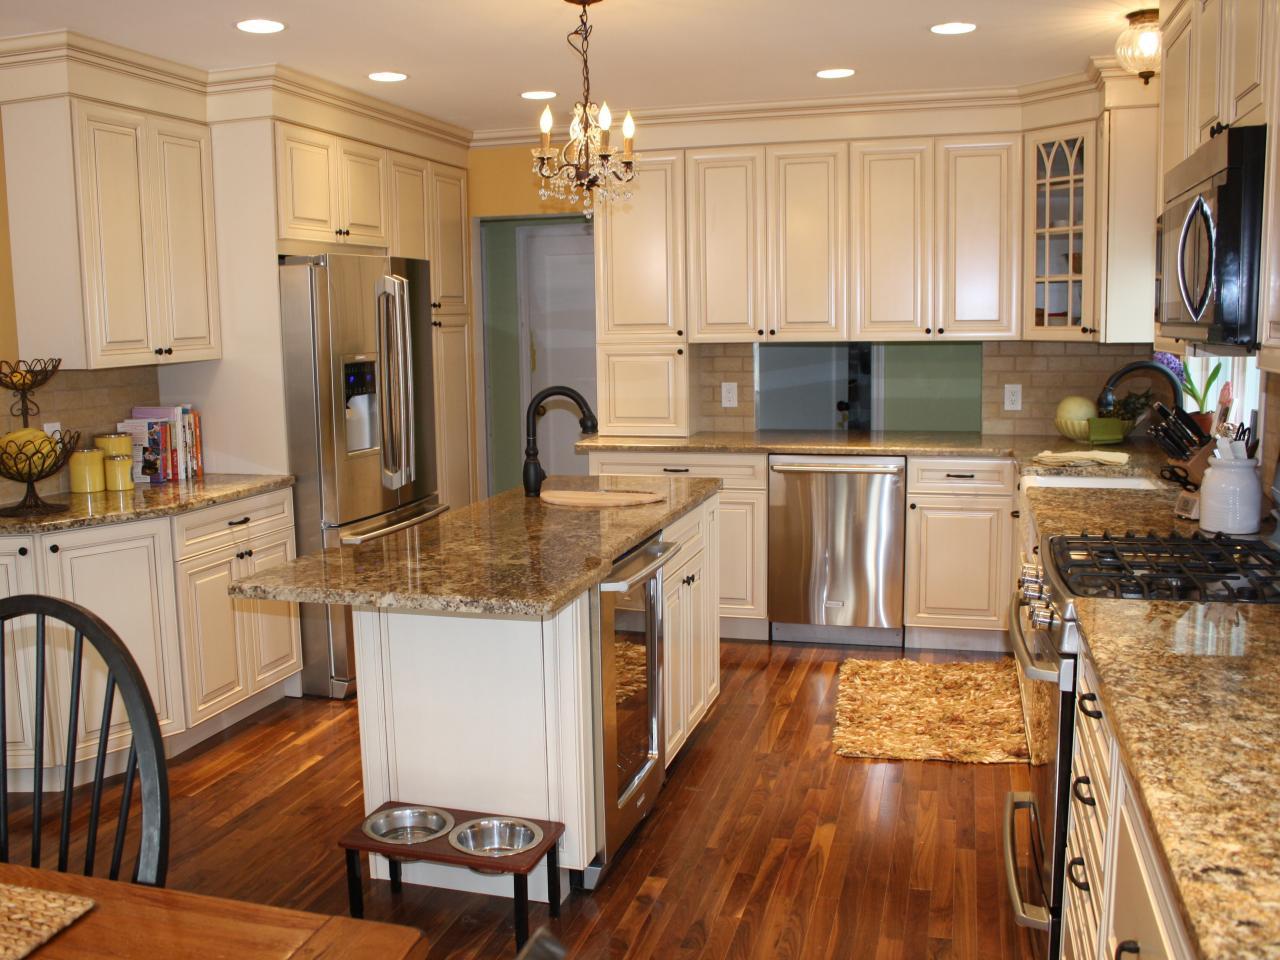 kitchen remodeling ideas diy money saving kitchen remodeling tips diy theydesign for kitchen remodel  designs OSDCSZZ